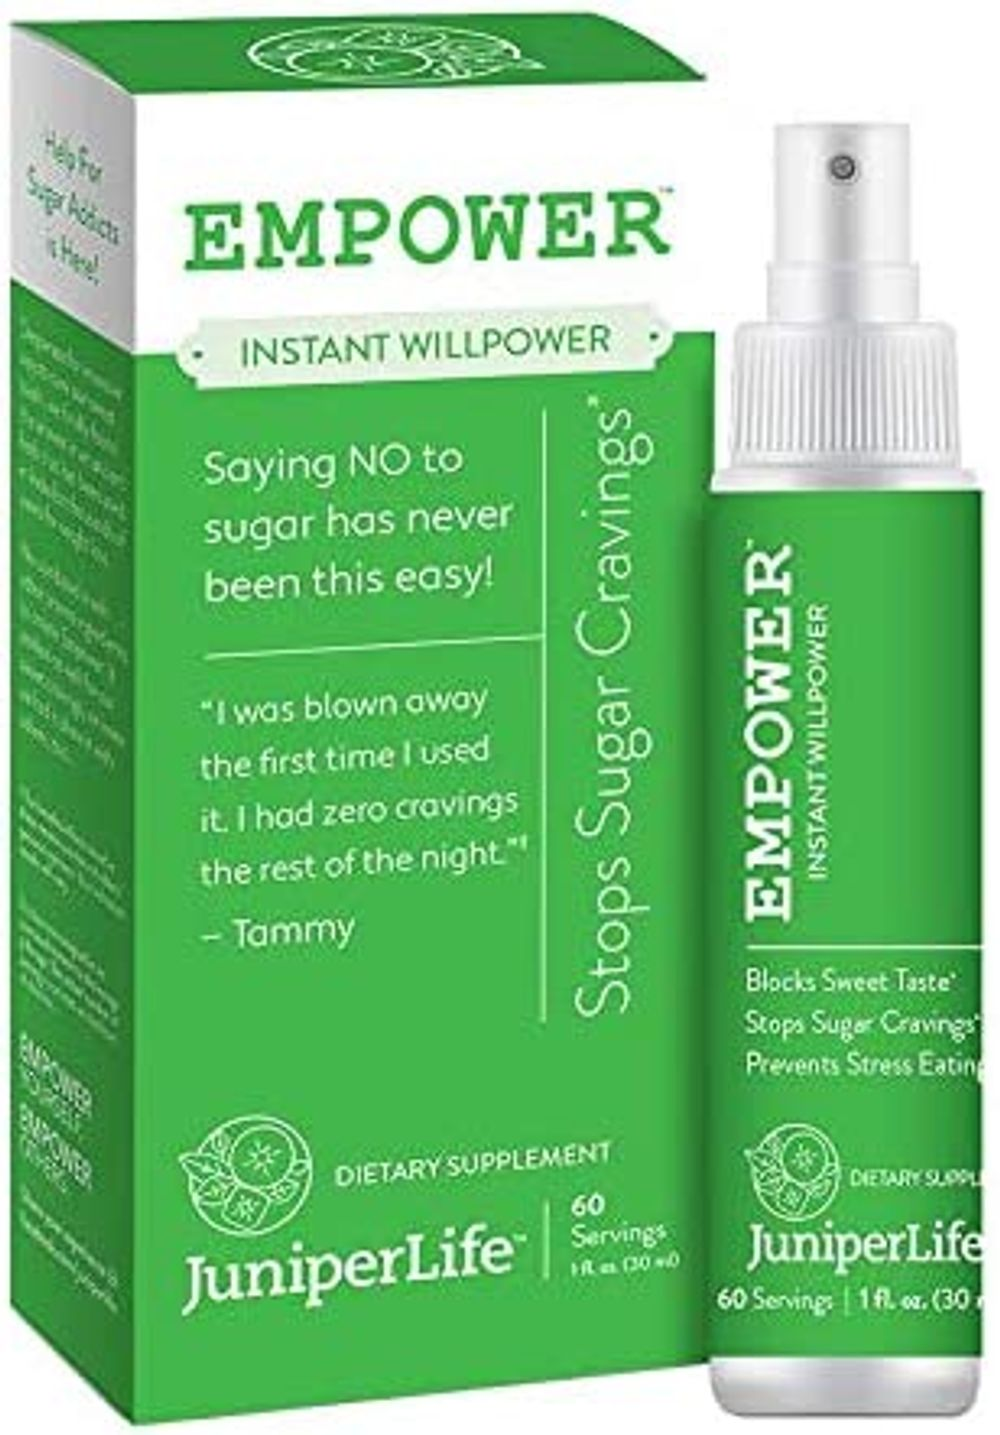 Empower - Instant Willpower™ Stop Sugar Cravings for Healthy Weight Management   Gymnema Sylvestre Taste and Carb Blocker to Support Keto, Low Carb Diets